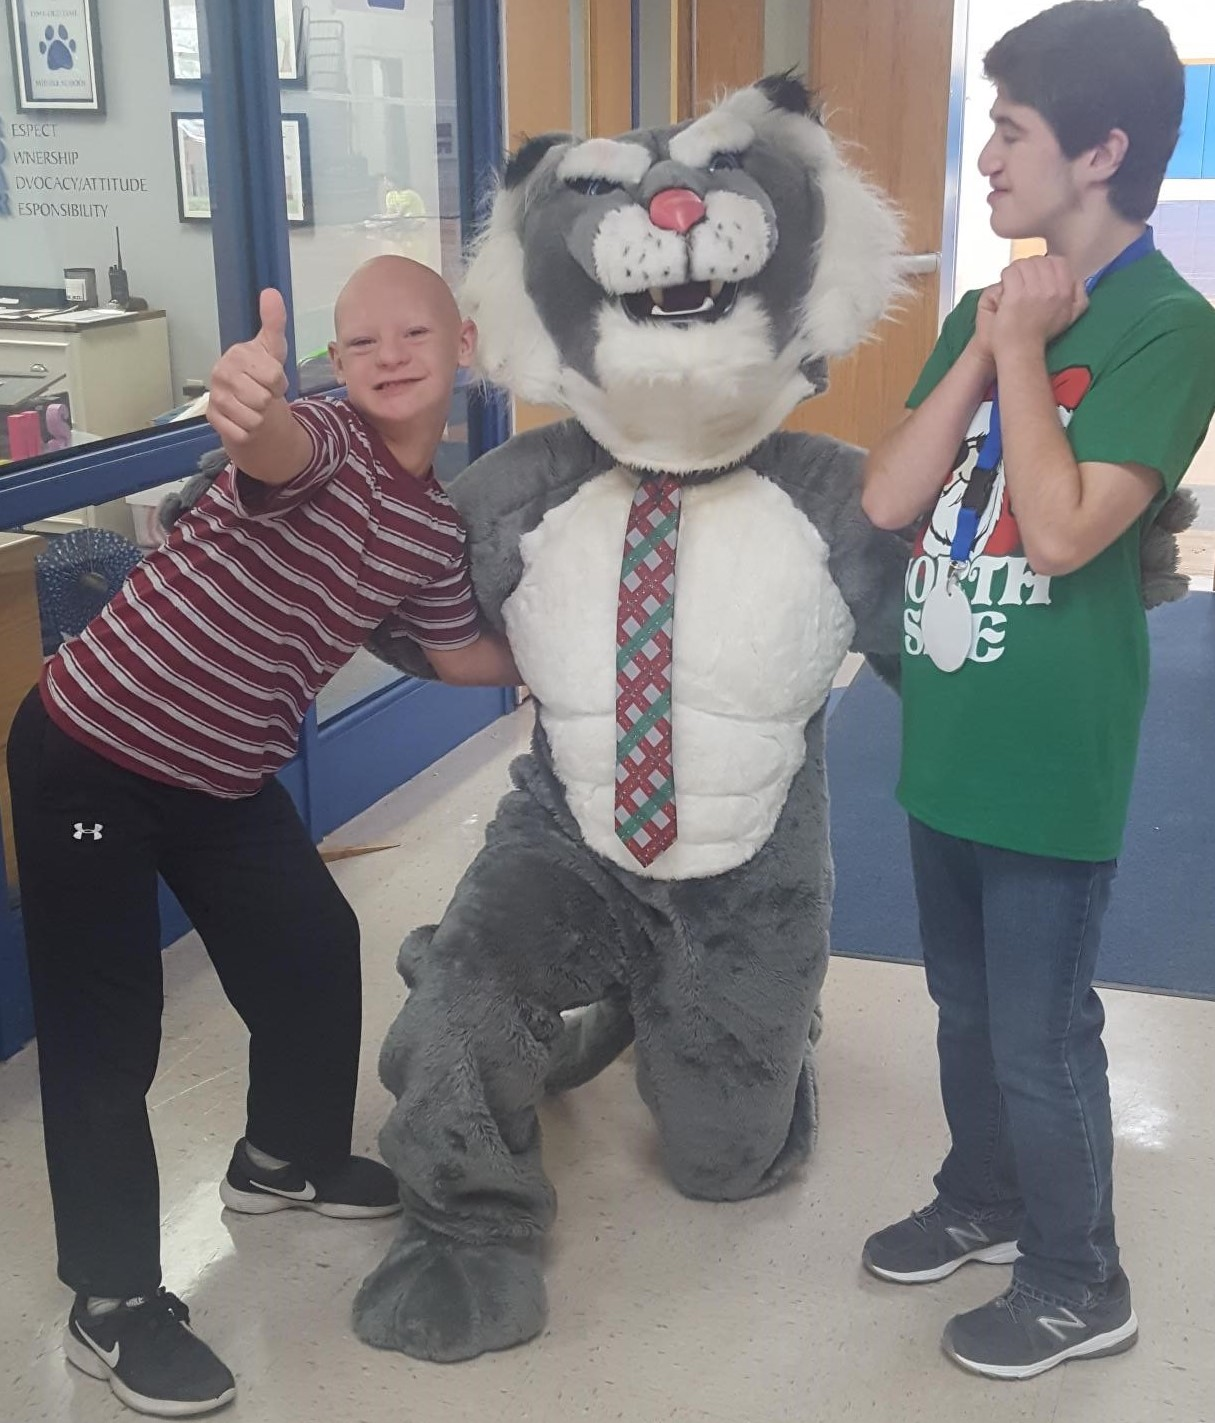 Wildcat and Pete and Nate